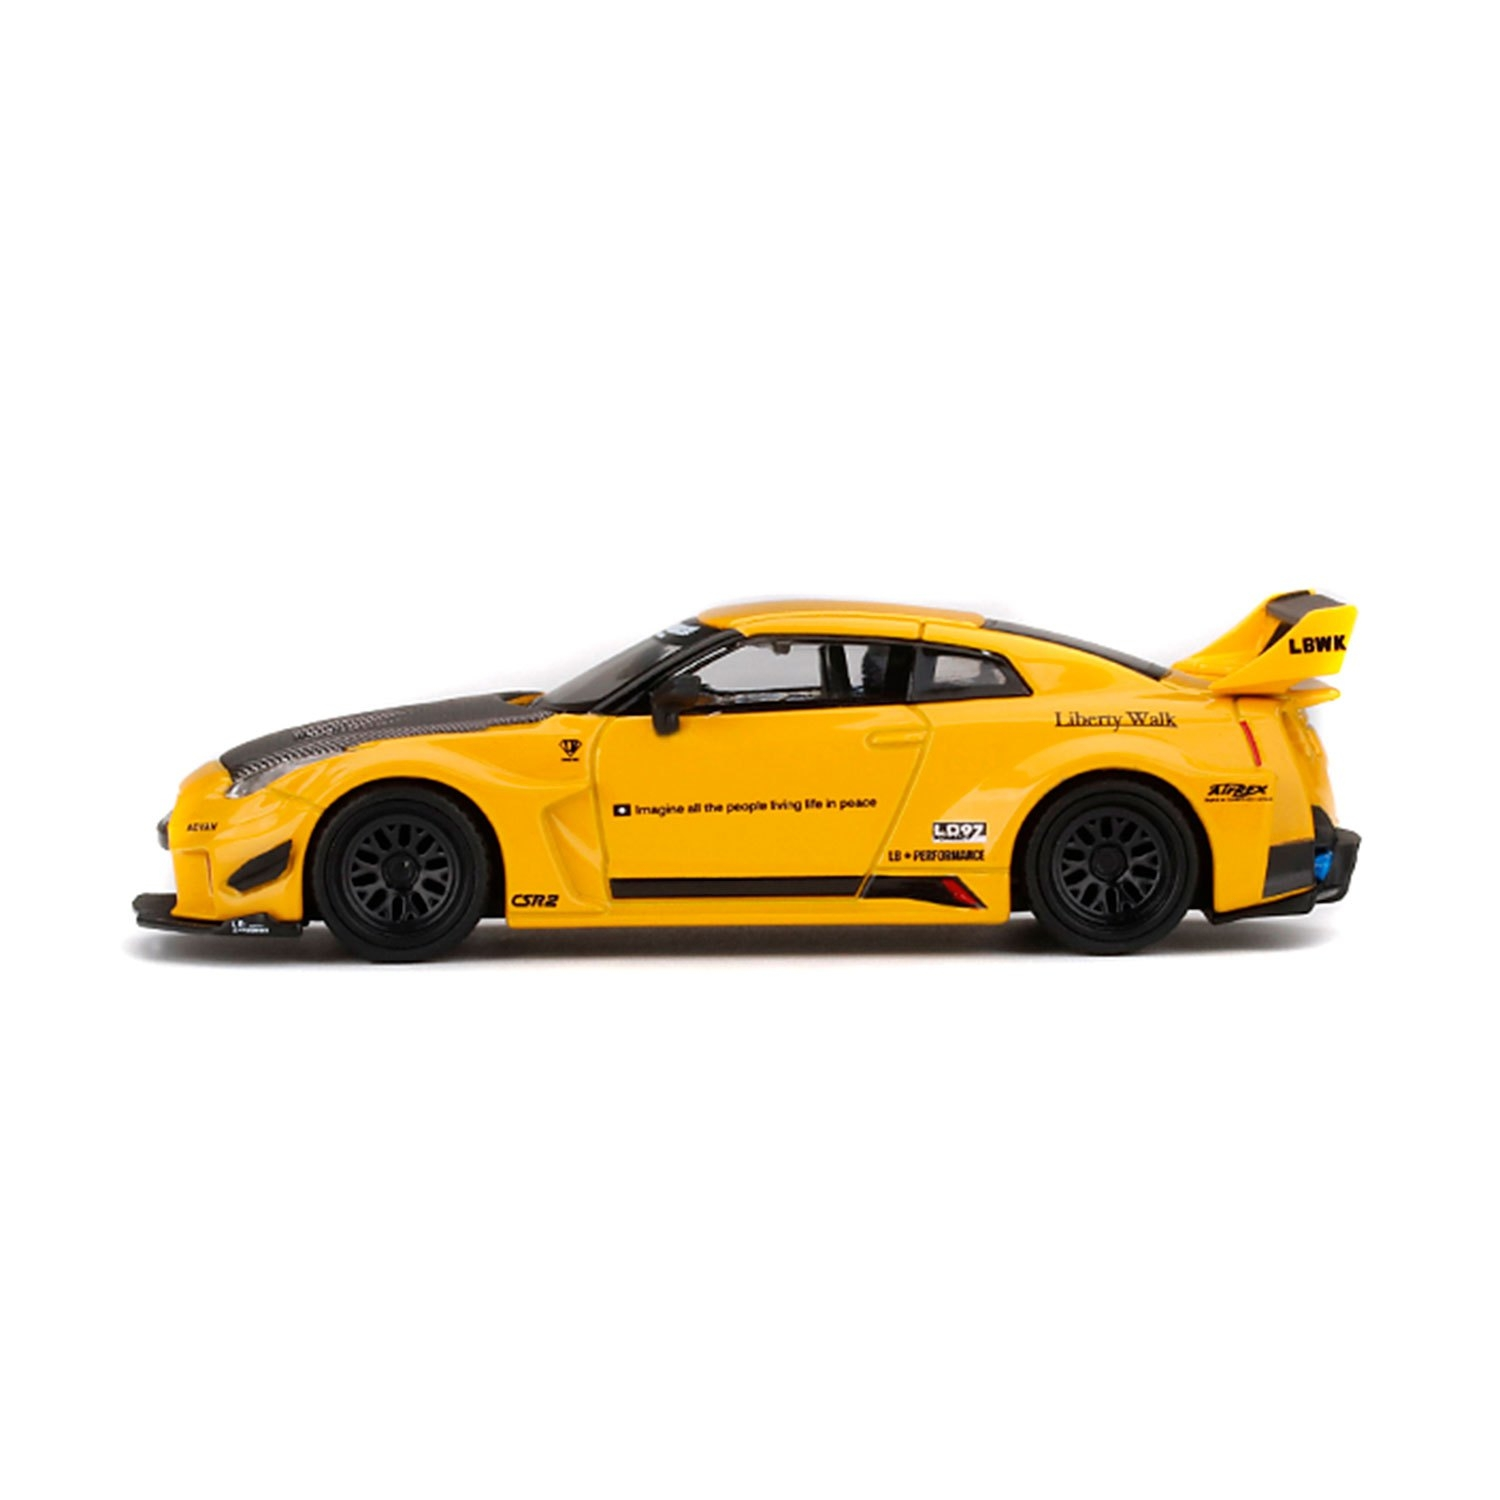 1/64 LB-SILHOUETTE WORKS GT-R YELLOW